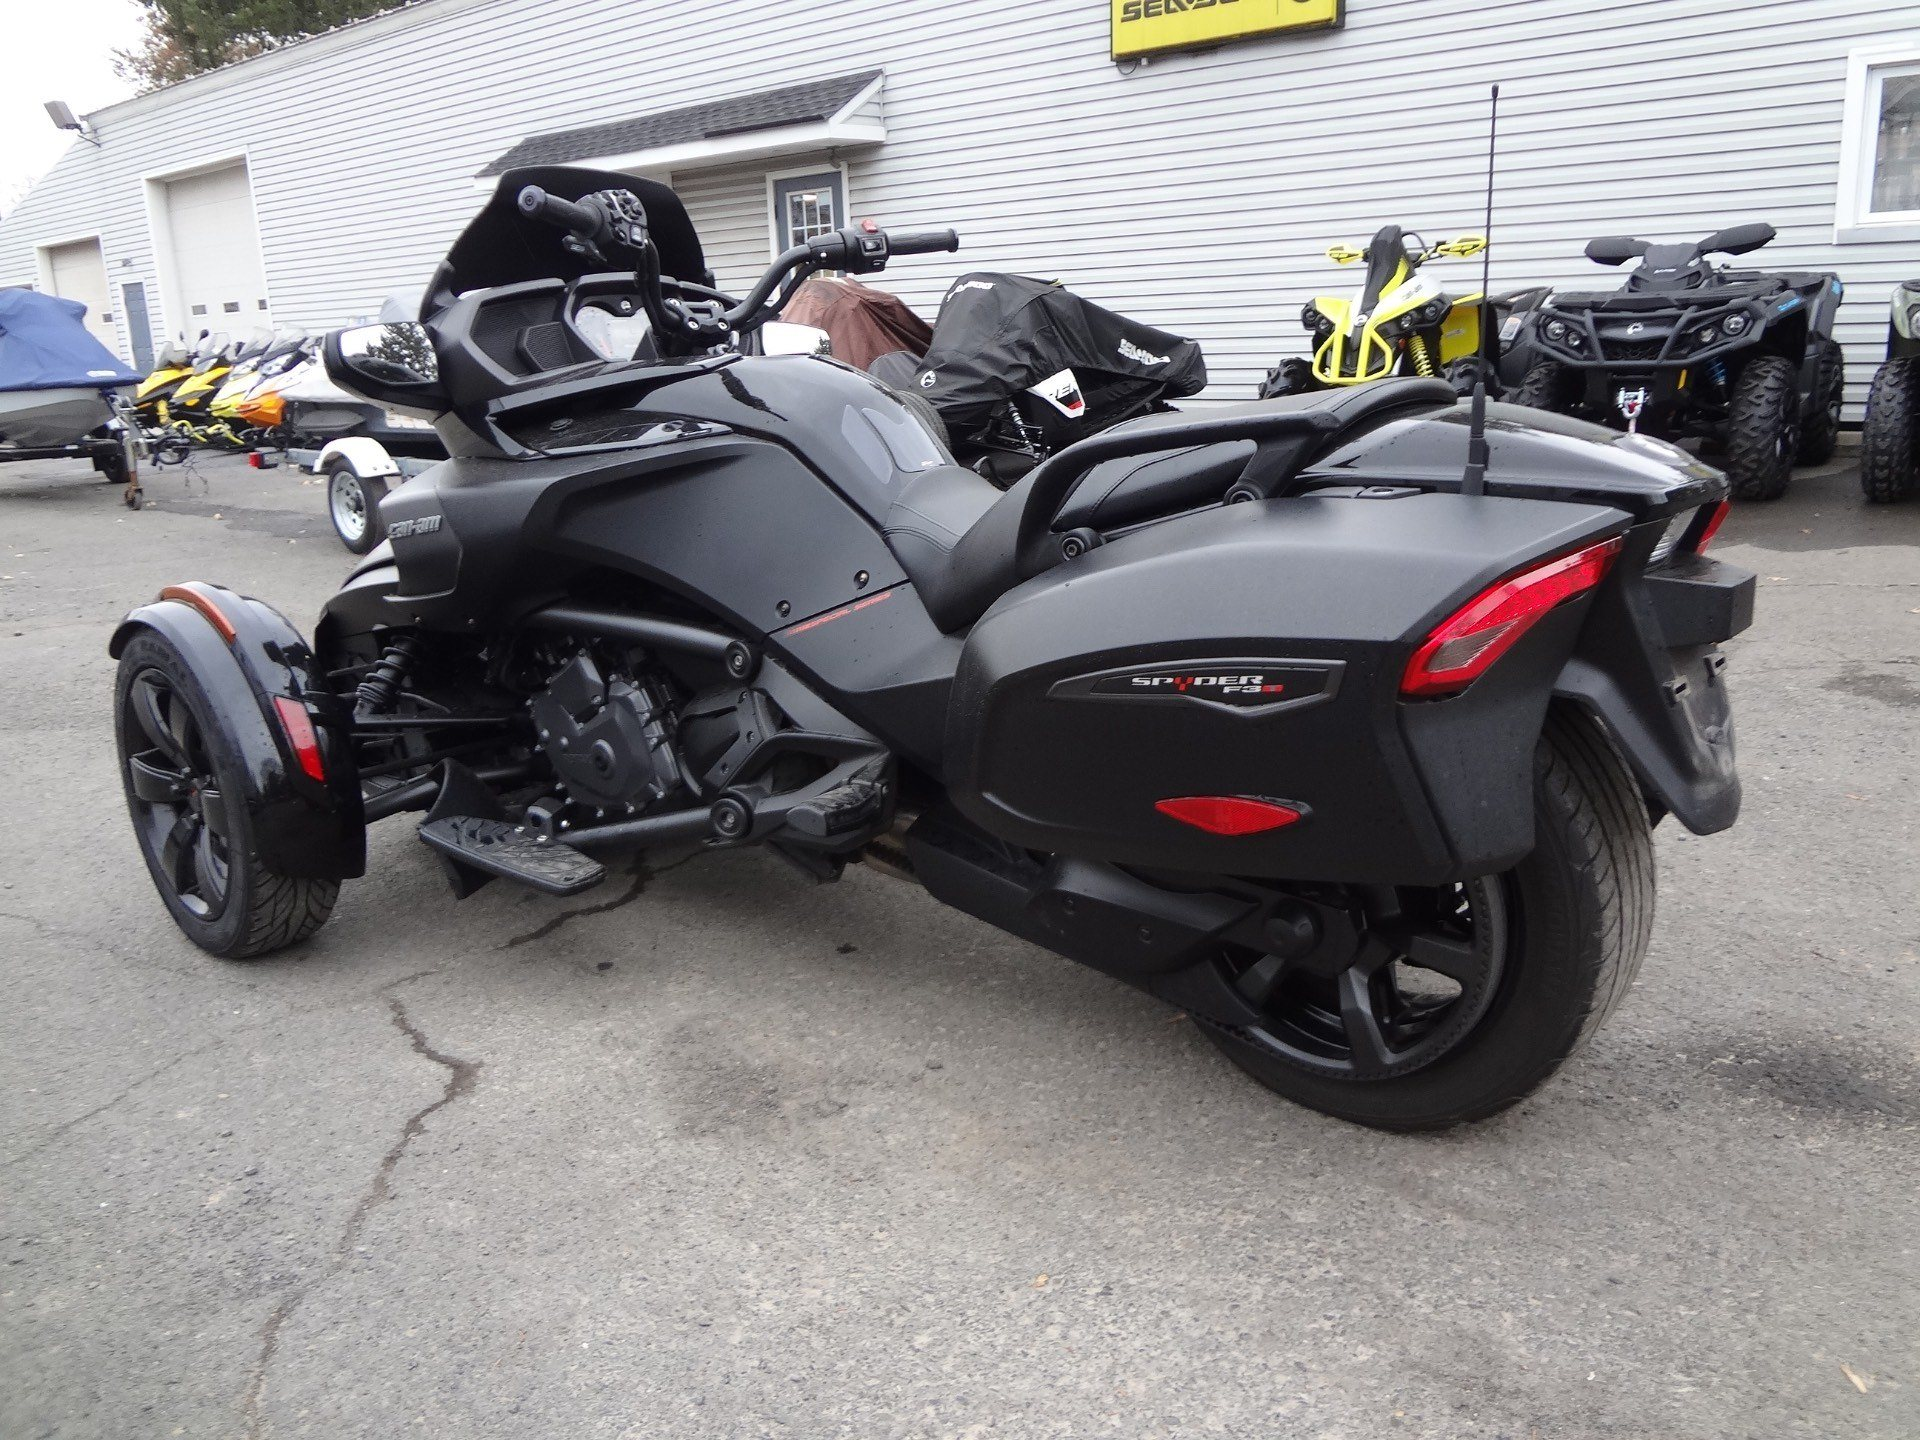 2017 Can-Am Spyder F3-T SE6 in New Britain, Pennsylvania - Photo 4